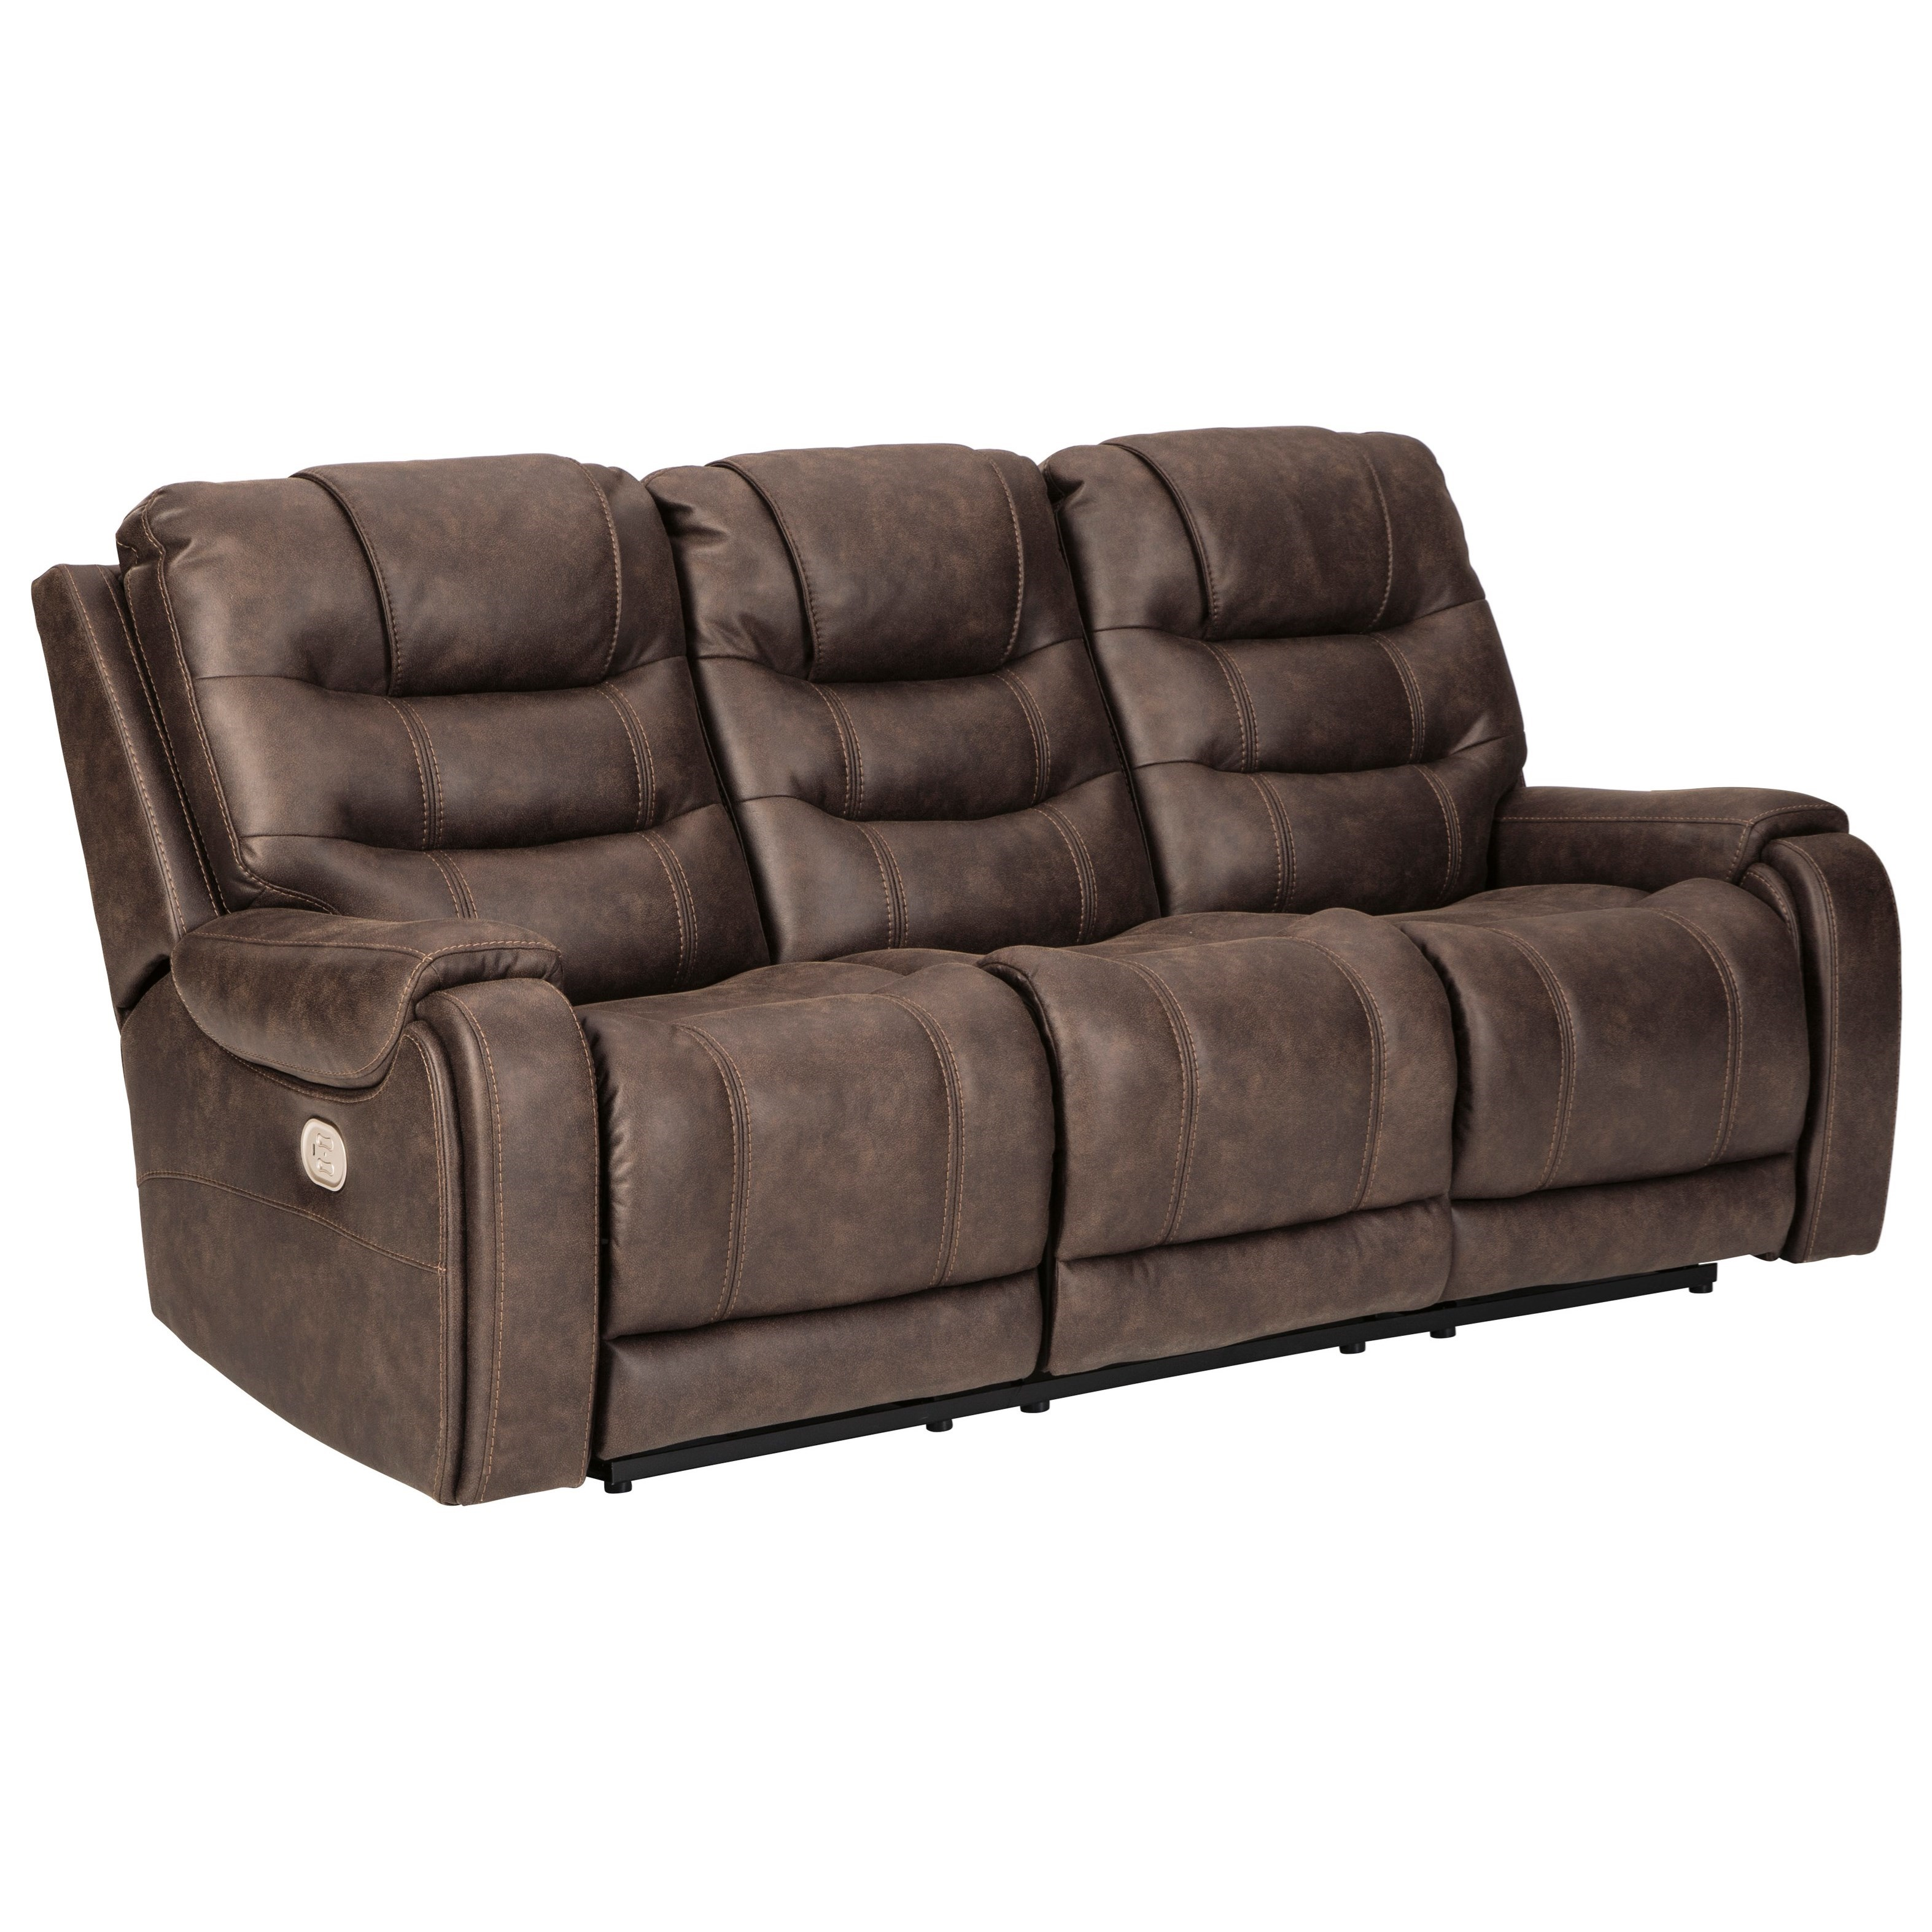 Yacolt Power Reclining Sofa by Signature Design by Ashley at Beck's Furniture